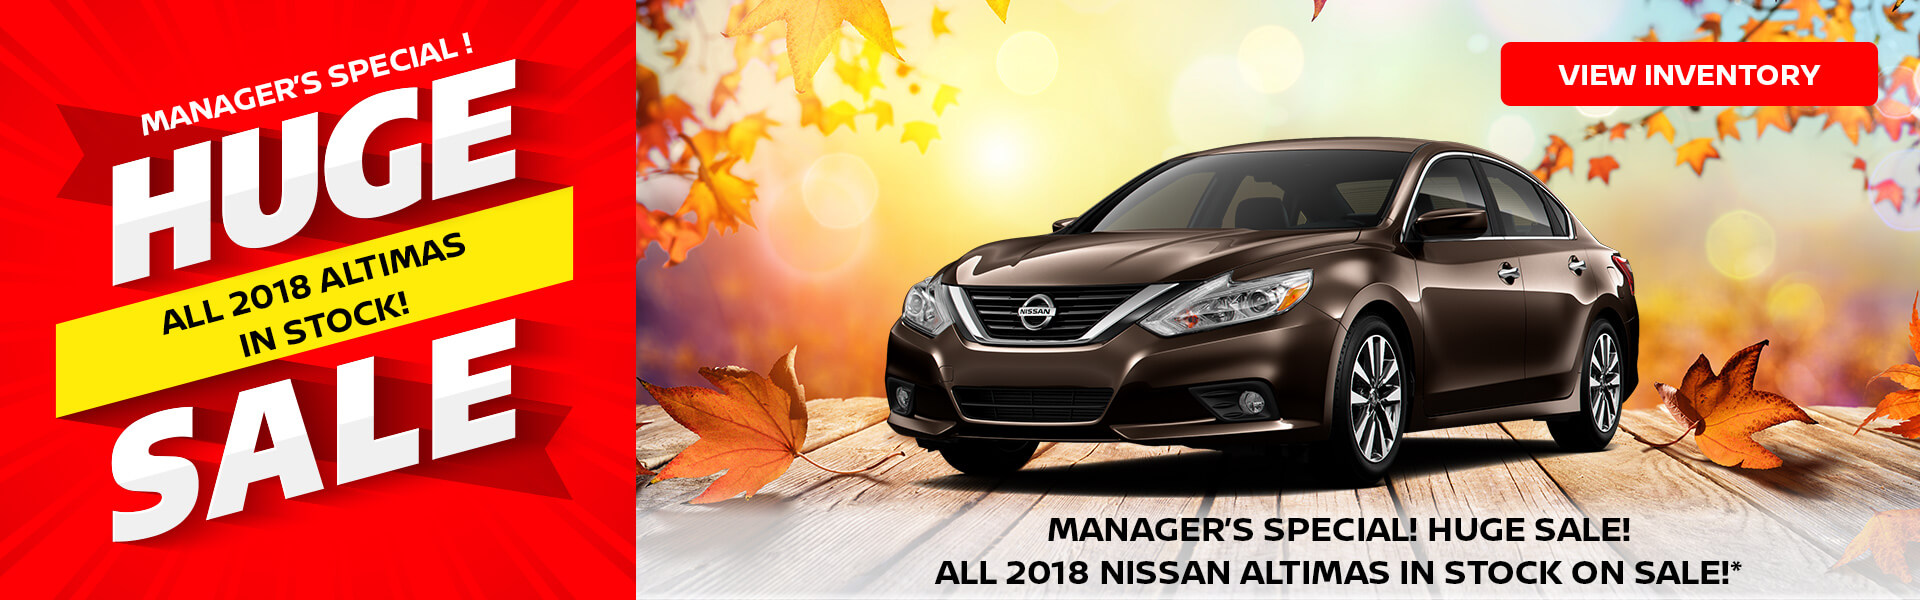 Manager Specials on Nissan Altima